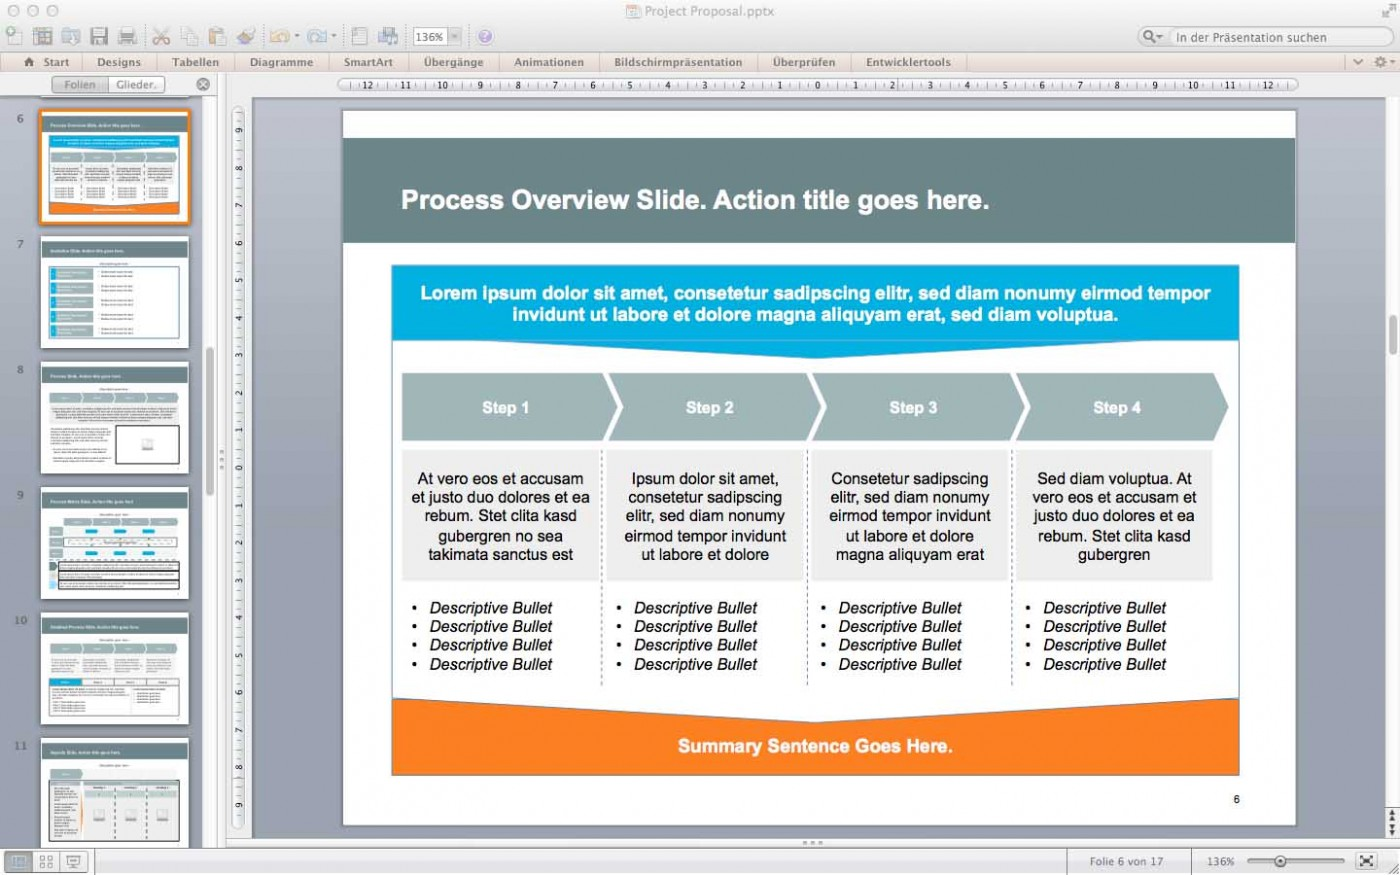 007 Powerpoint Presentation Format For Research Paper Project Proposal Template Templates Pro Mac Unique Sample 1400